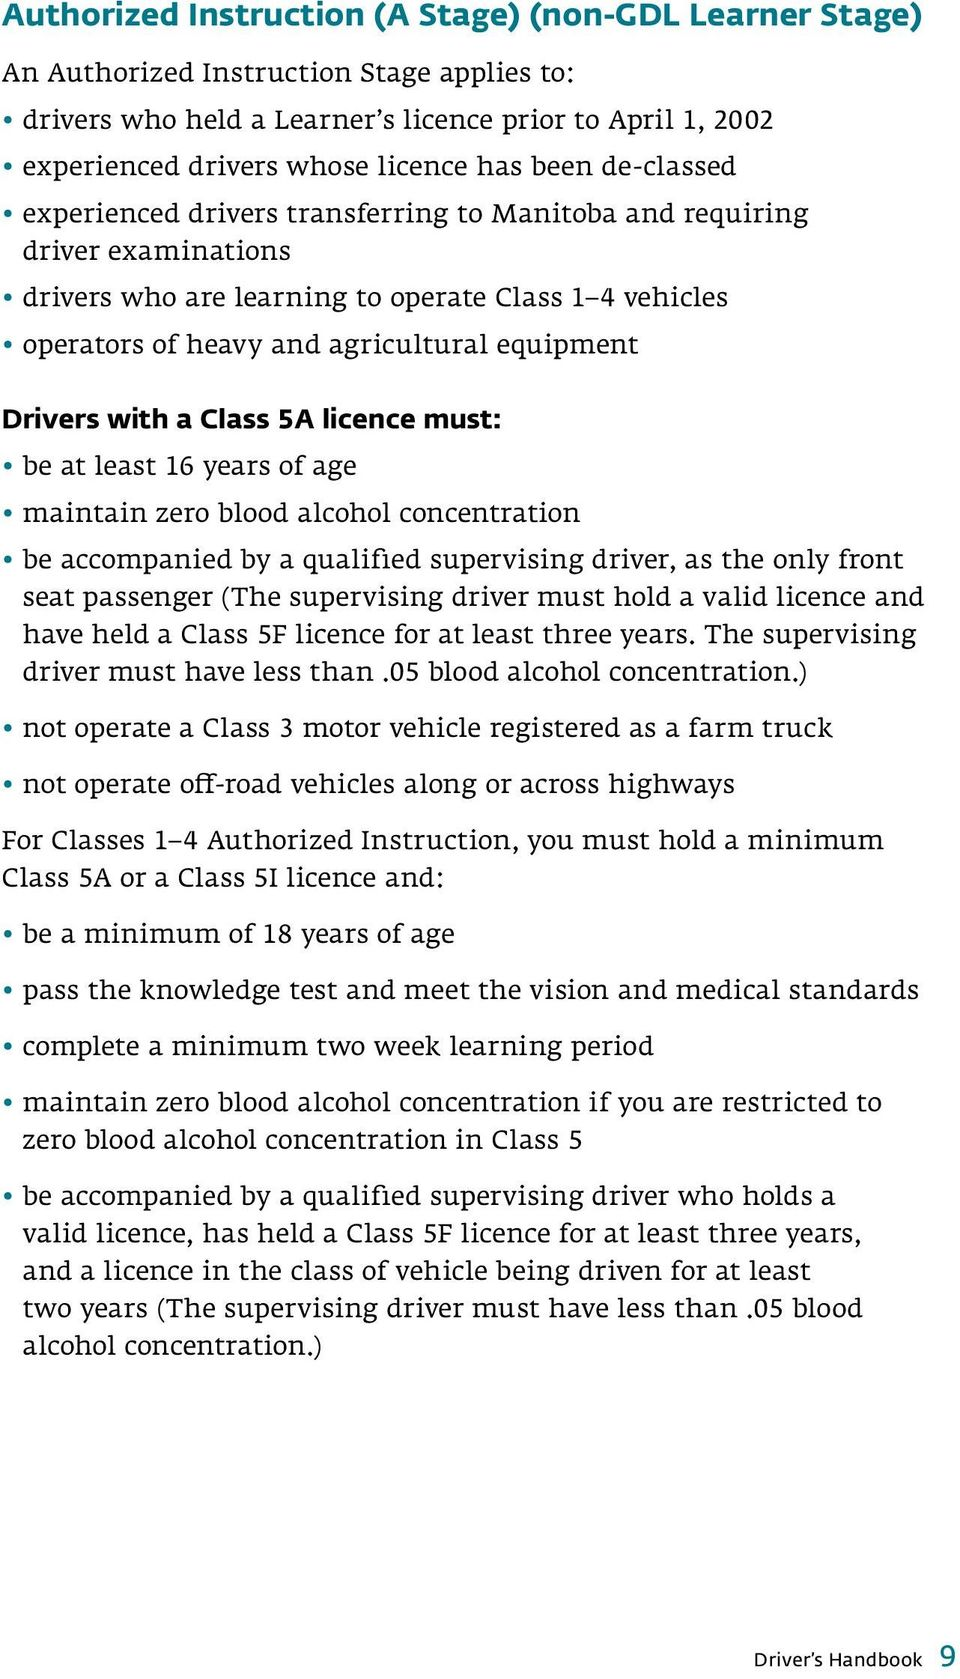 Drivers with a Class 5A licence must: be at least 16 years of age maintain zero blood alcohol concentration be accompanied by a qualified supervising driver, as the only front seat passenger (The